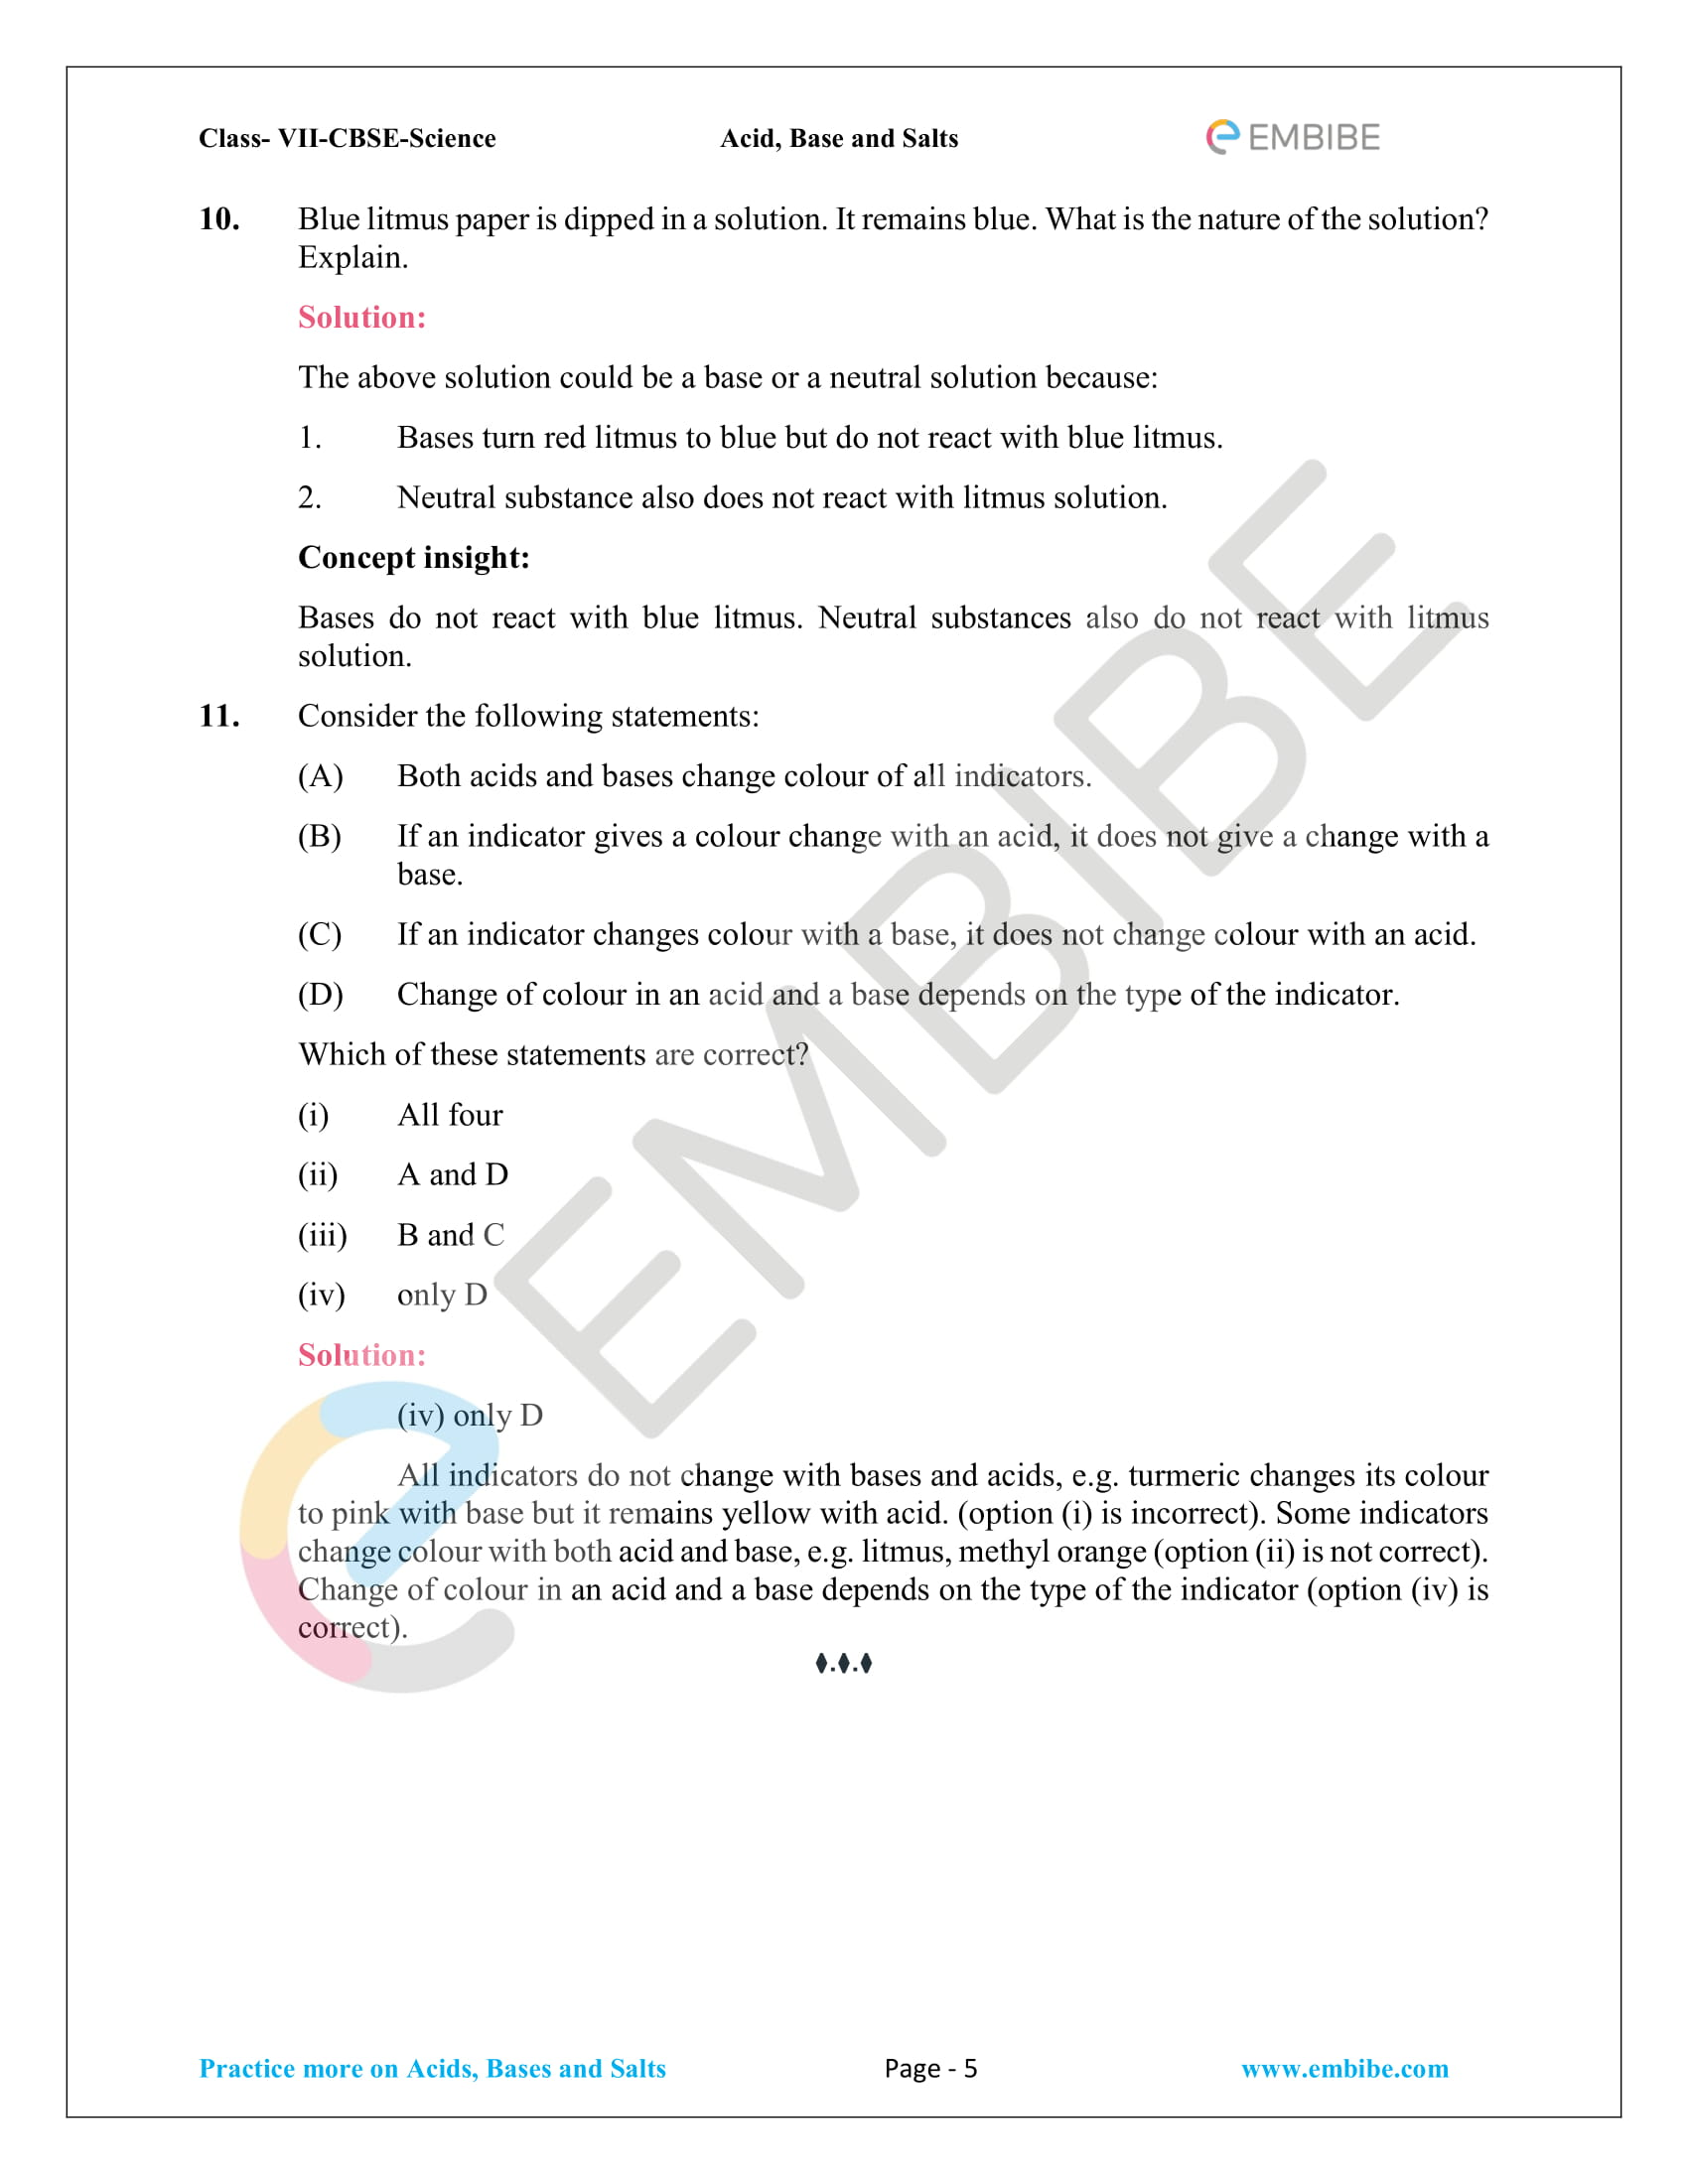 NCERT Solutions For Class 7 Science Chapter 5 PDF: Acids